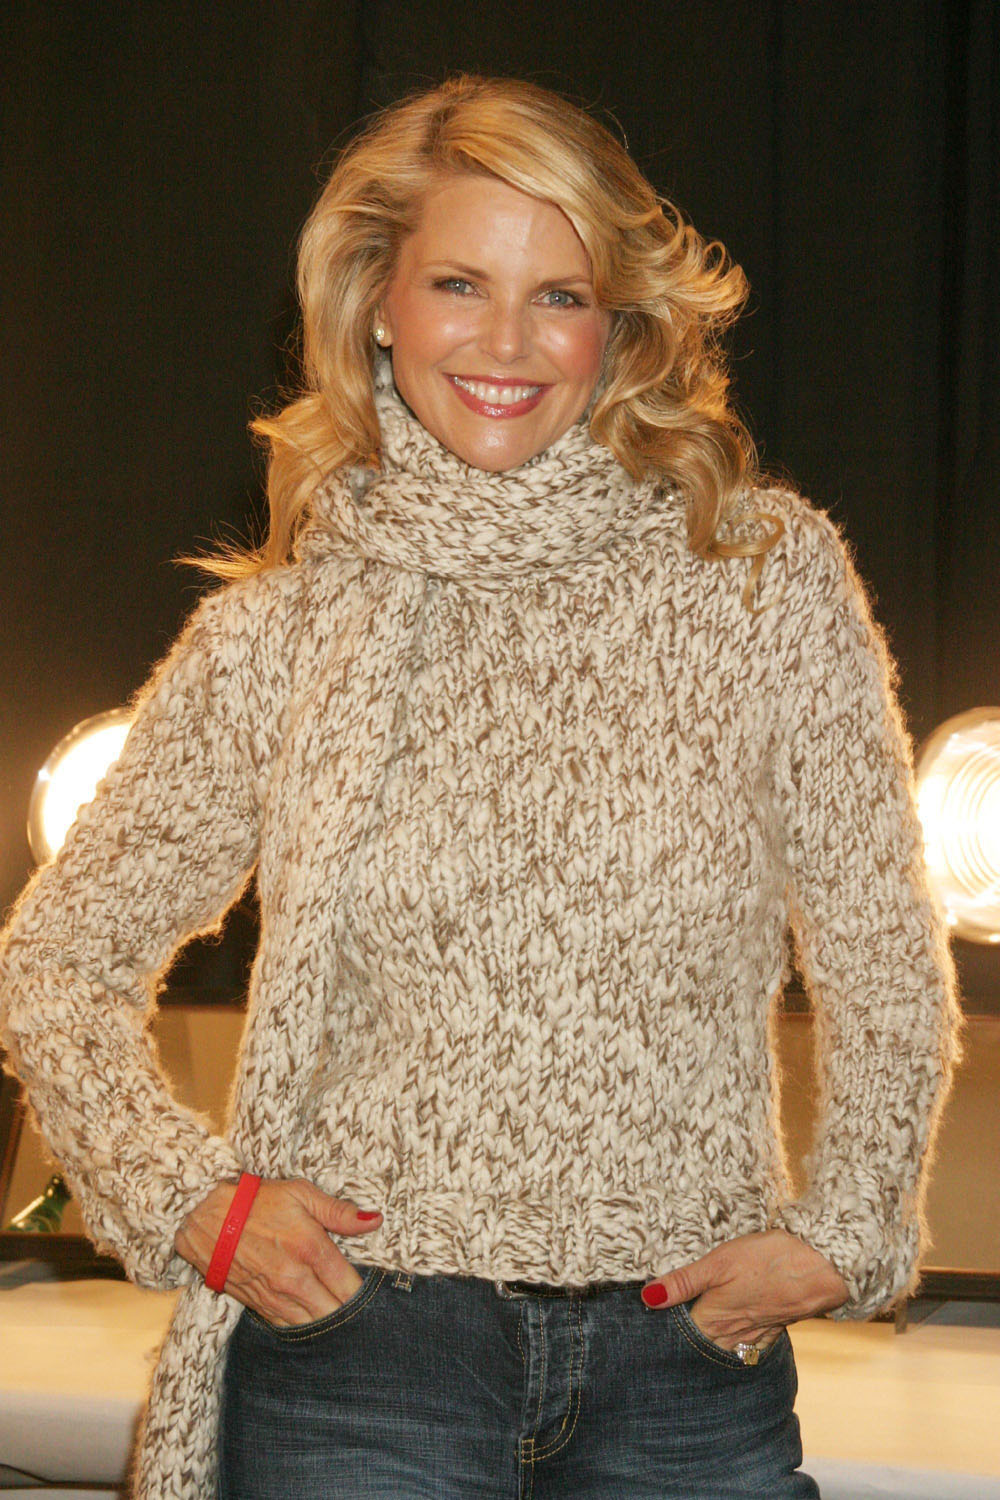 christie brinkley to play roxie hart in chicago